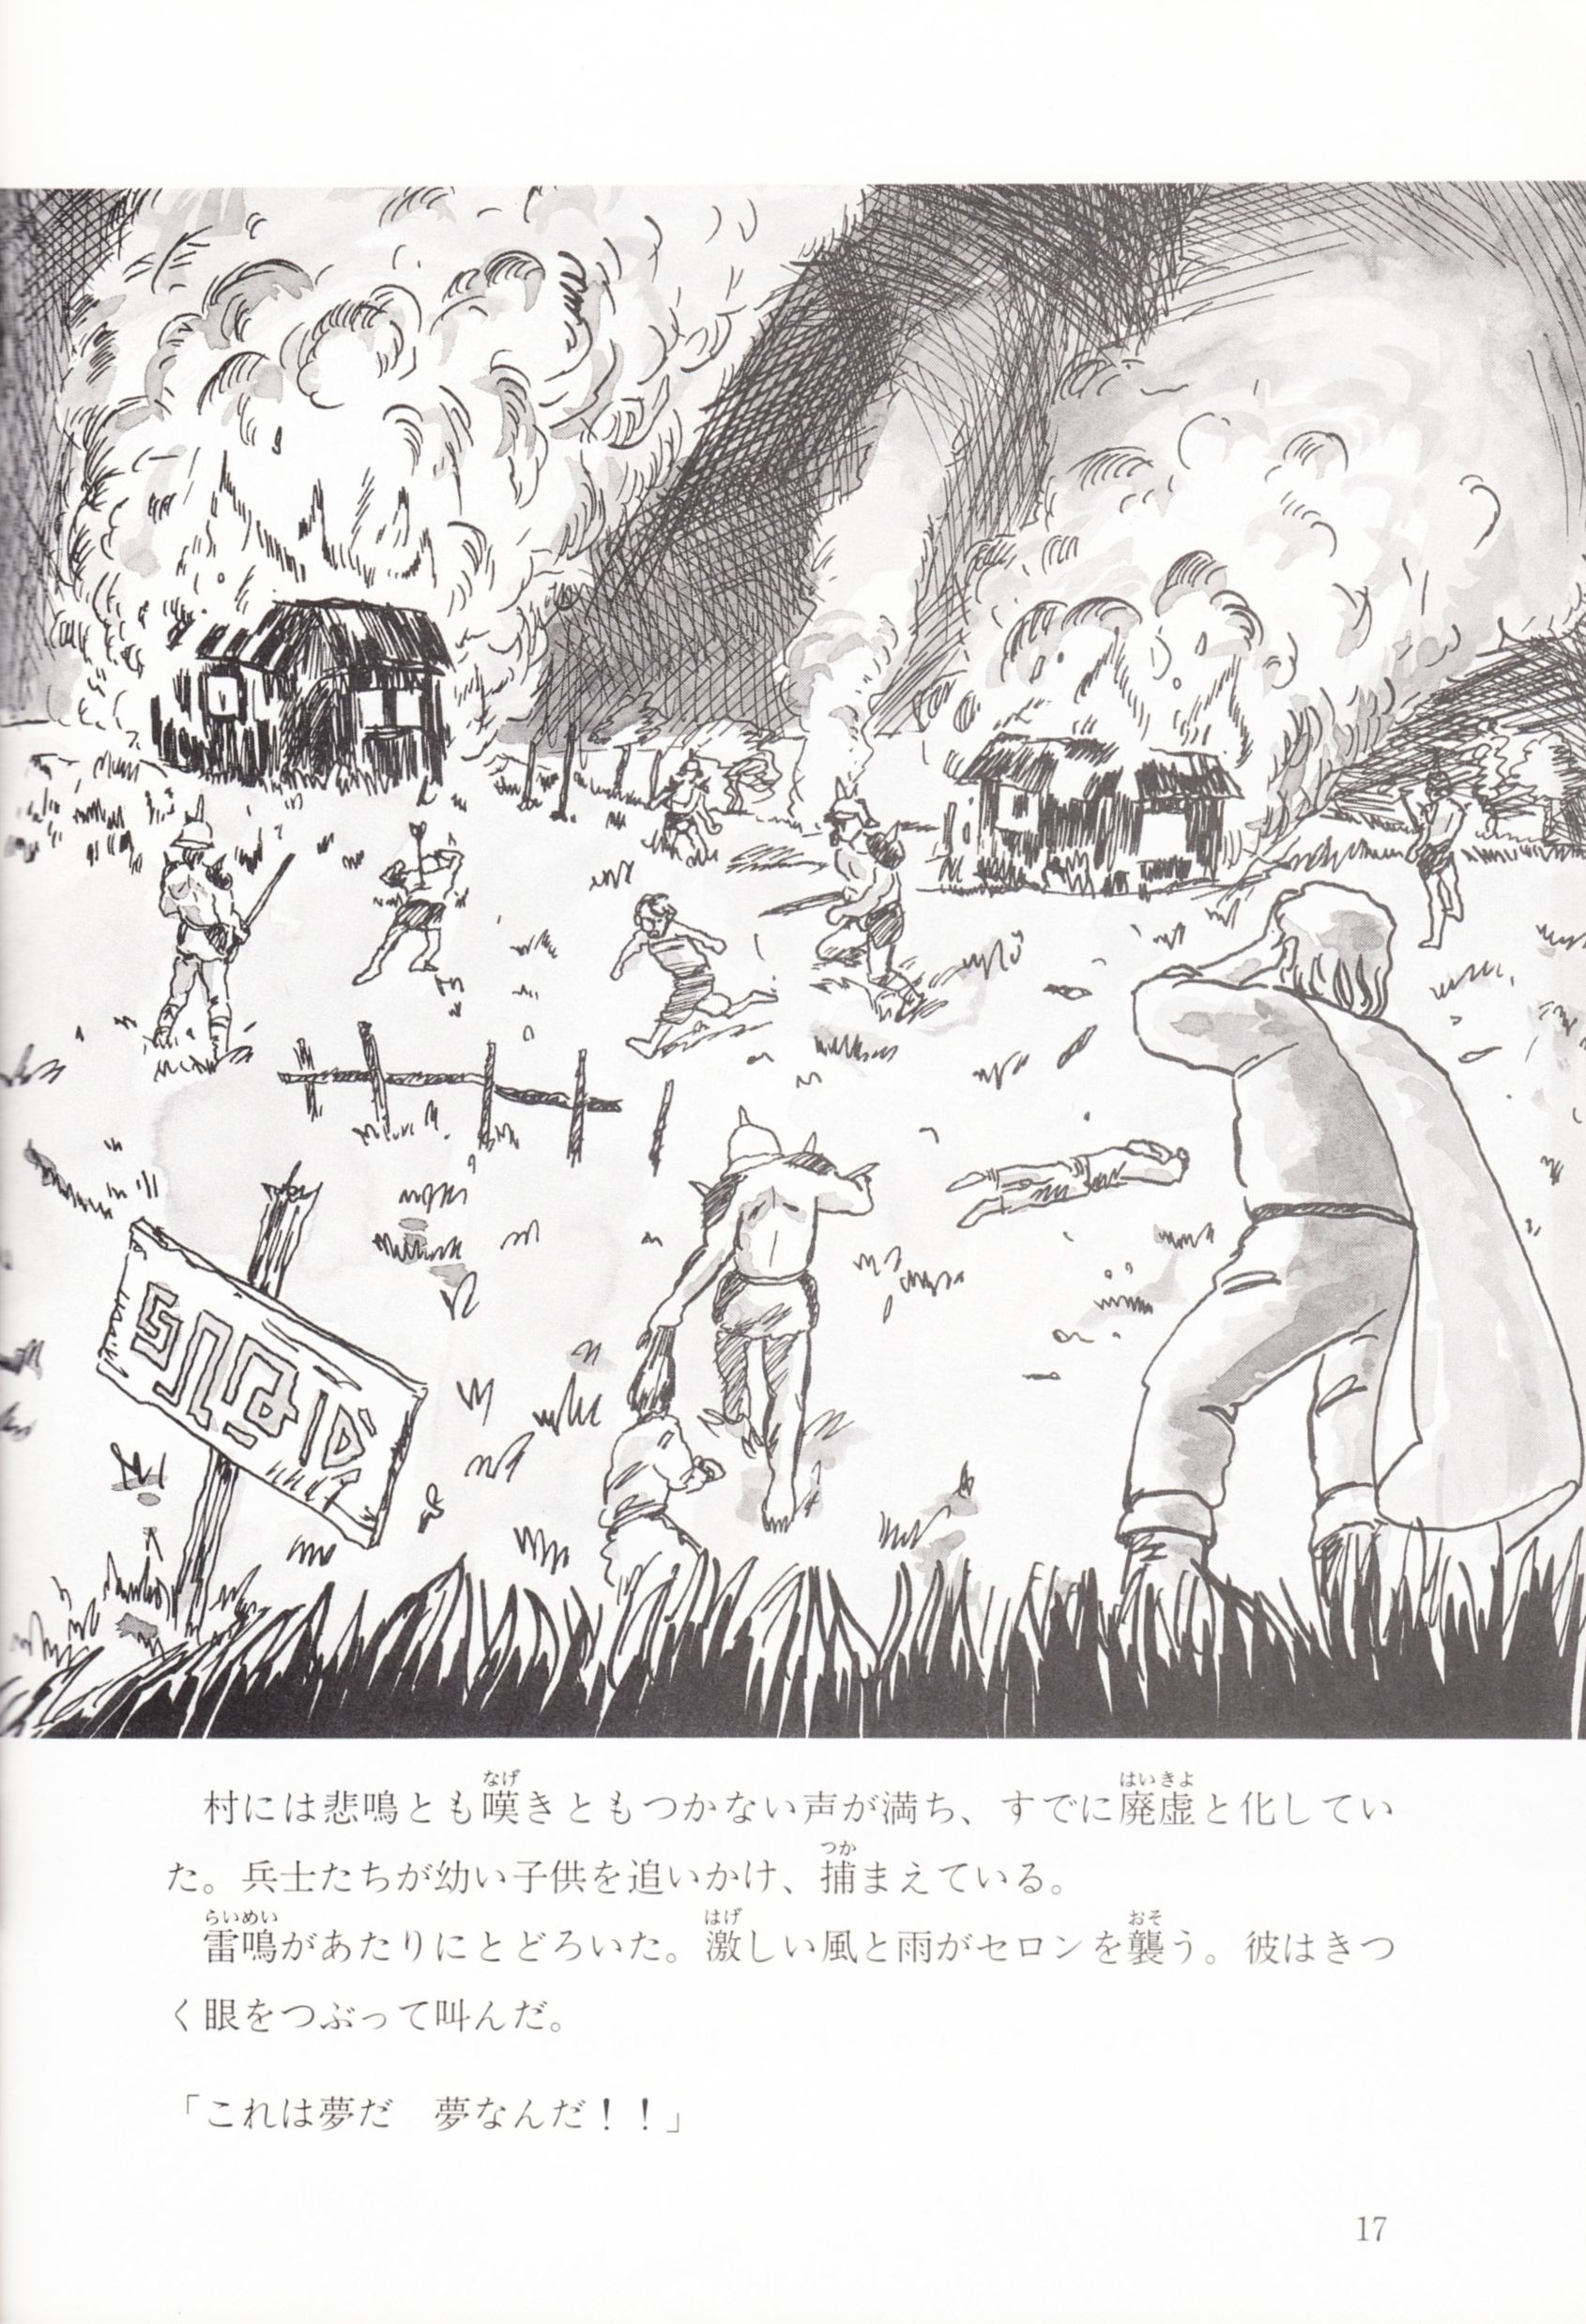 Game - Dungeon Master - JP - FM Towns - Story Guide - Page 019 - Scan